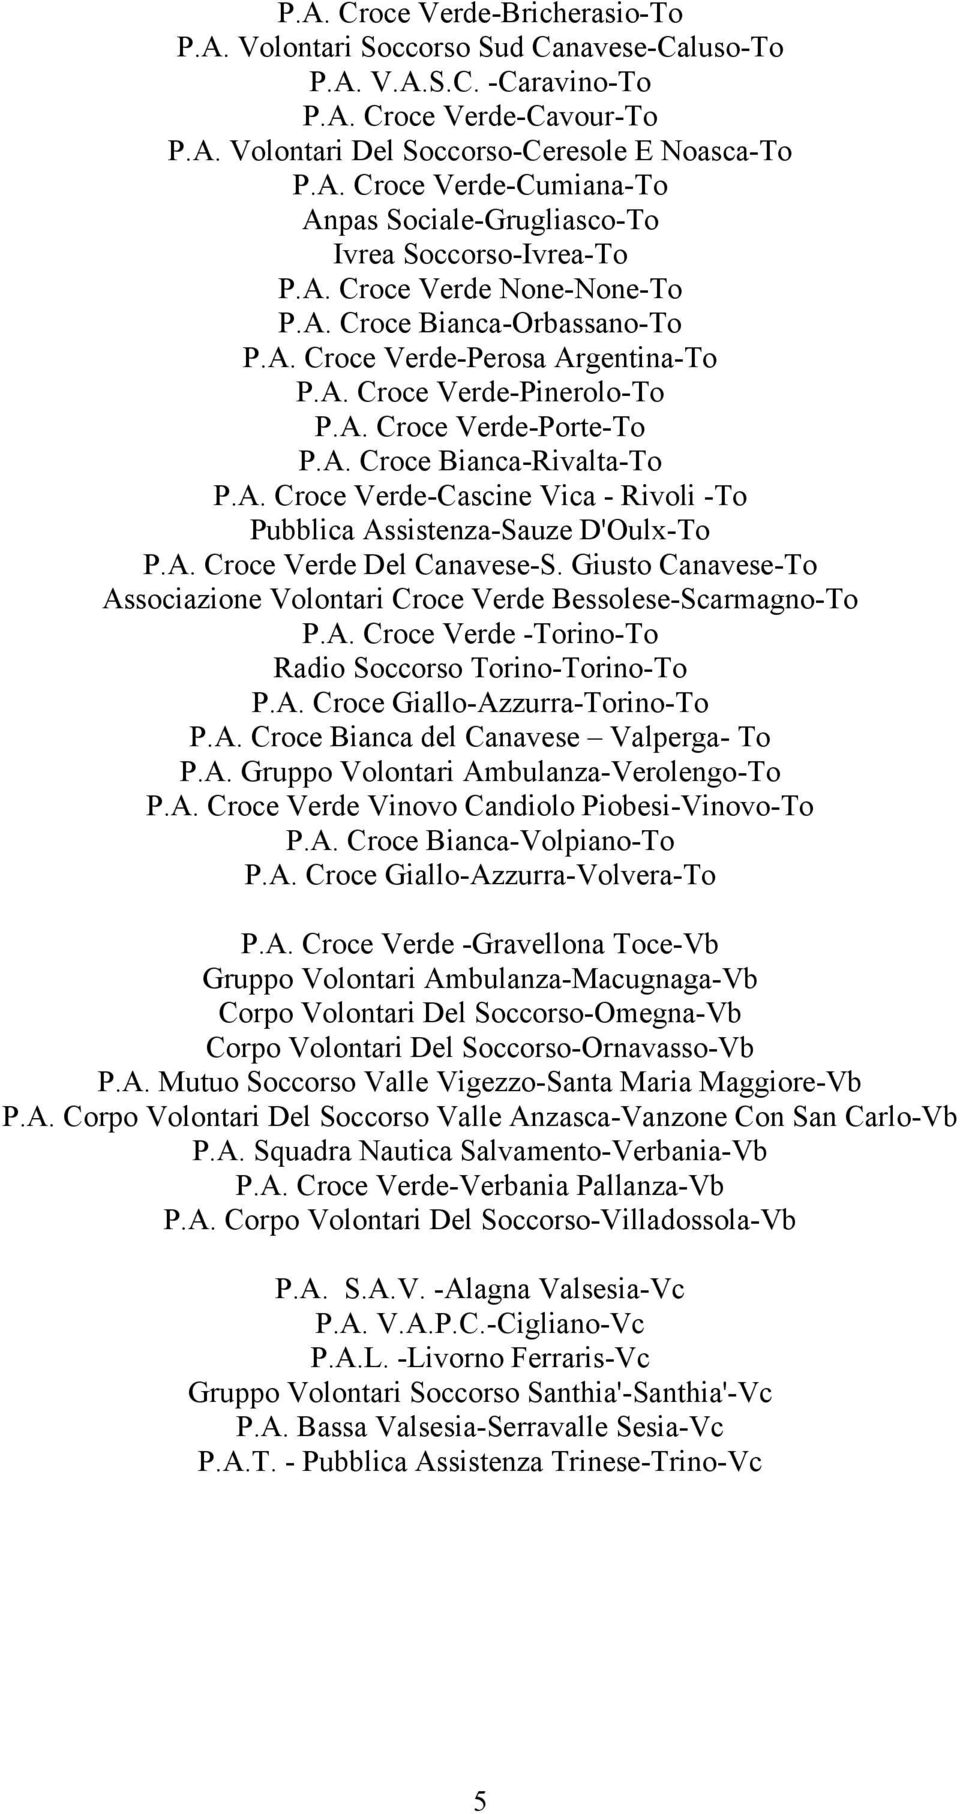 A. Croce Verde Del Canavese-S. Giusto Canavese-To Associazione Volontari Croce Verde Bessolese-Scarmagno-To P.A. Croce Verde -Torino-To Radio Soccorso Torino-Torino-To P.A. Croce Giallo-Azzurra-Torino-To P.